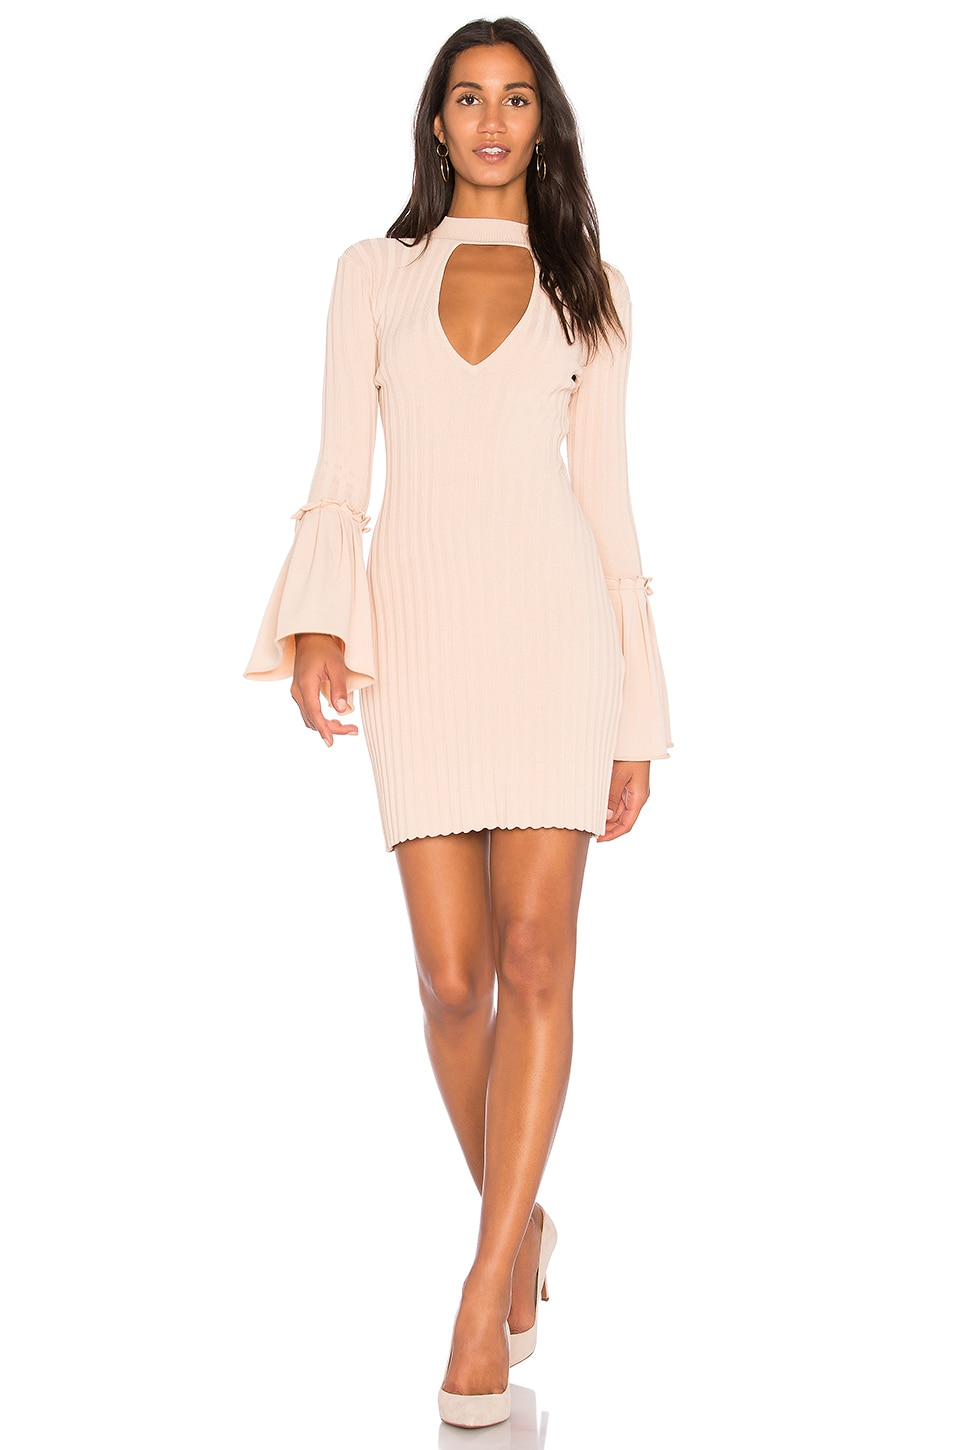 Mind Reader Knit Dress by C/MEO